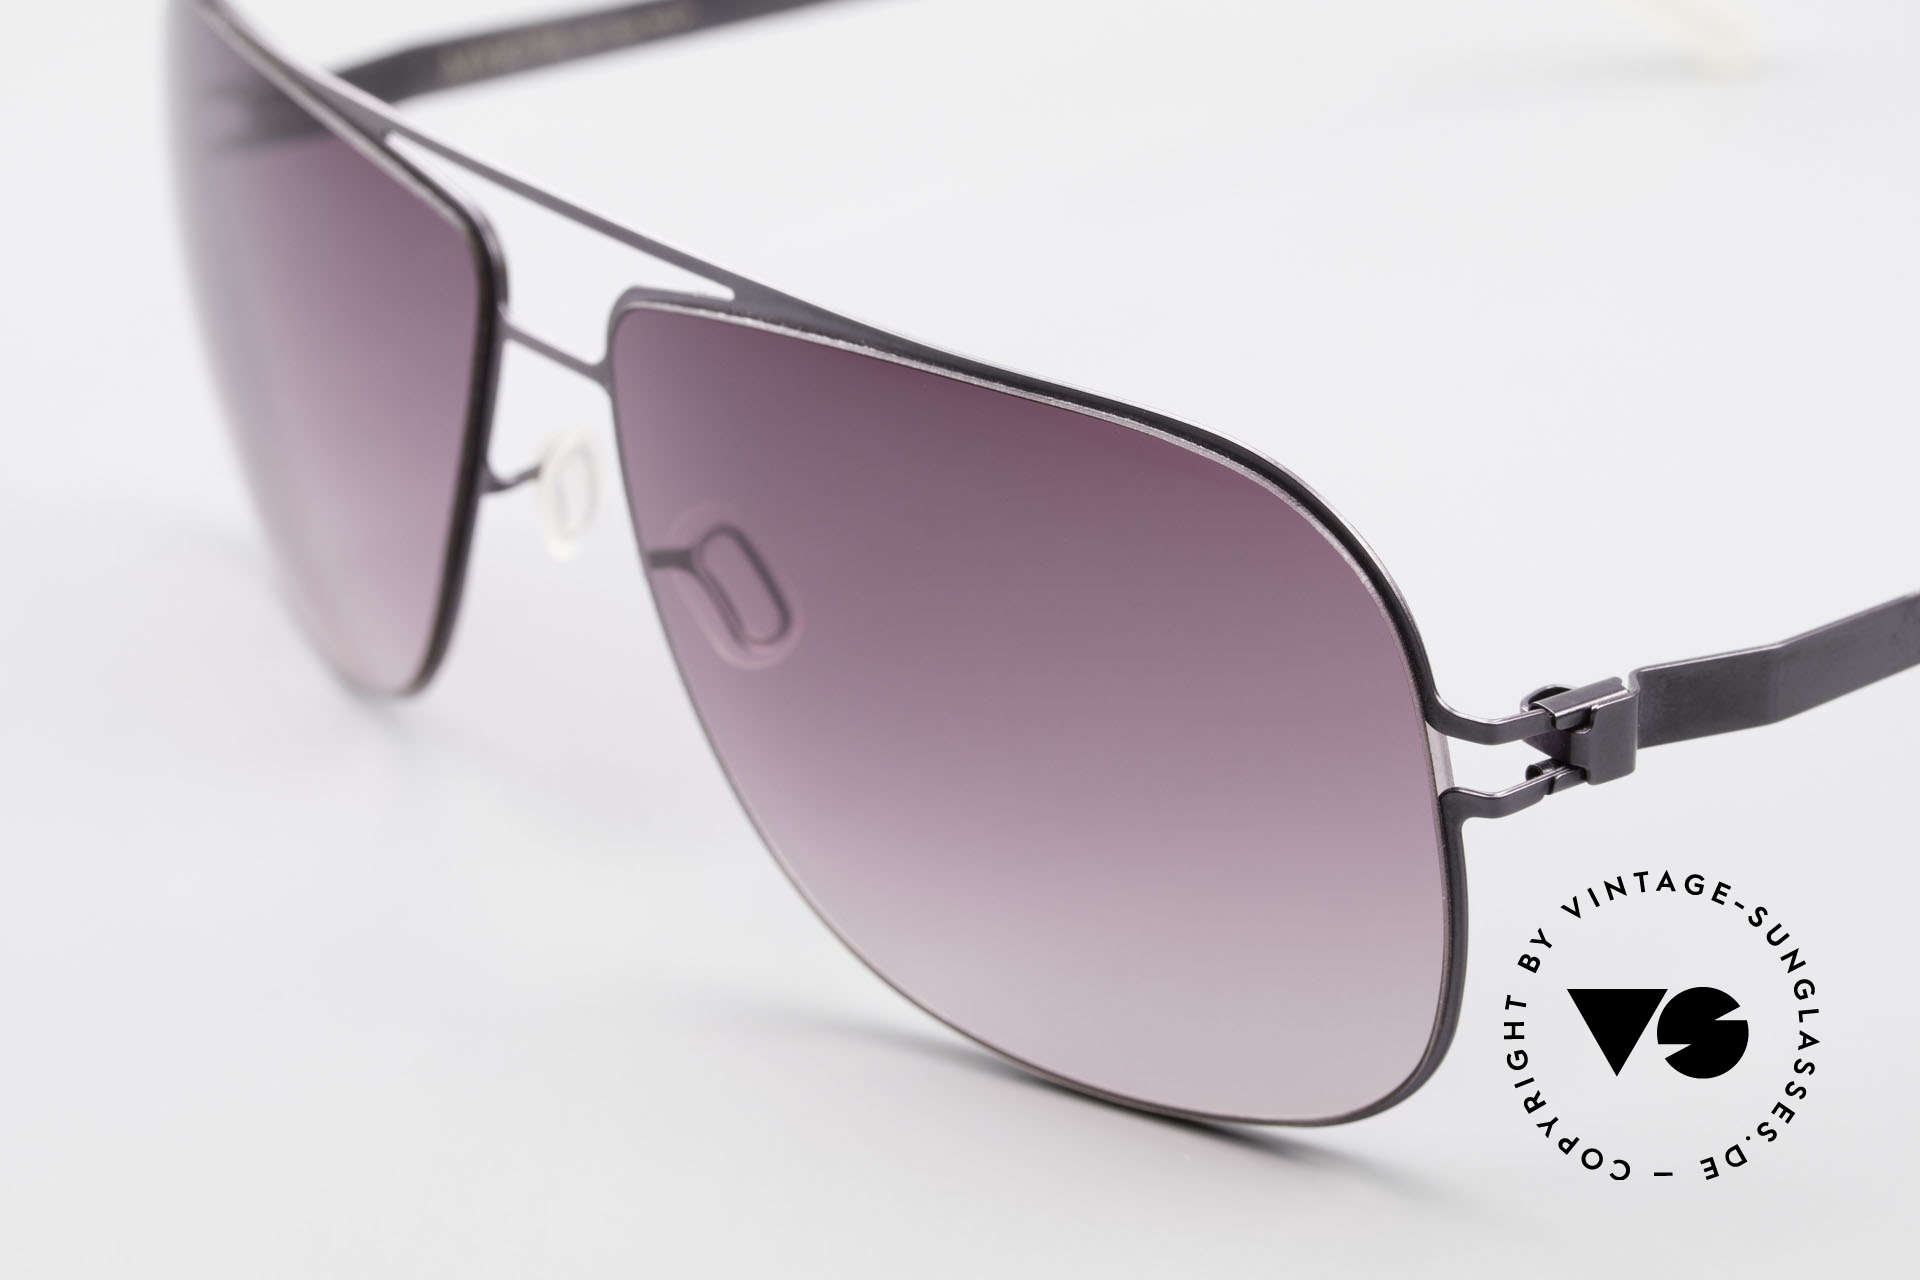 Mykita Rolf Angelina Jolie Mykita Shades, innovative and flexible metal frame = One size fits all!, Made for Men and Women